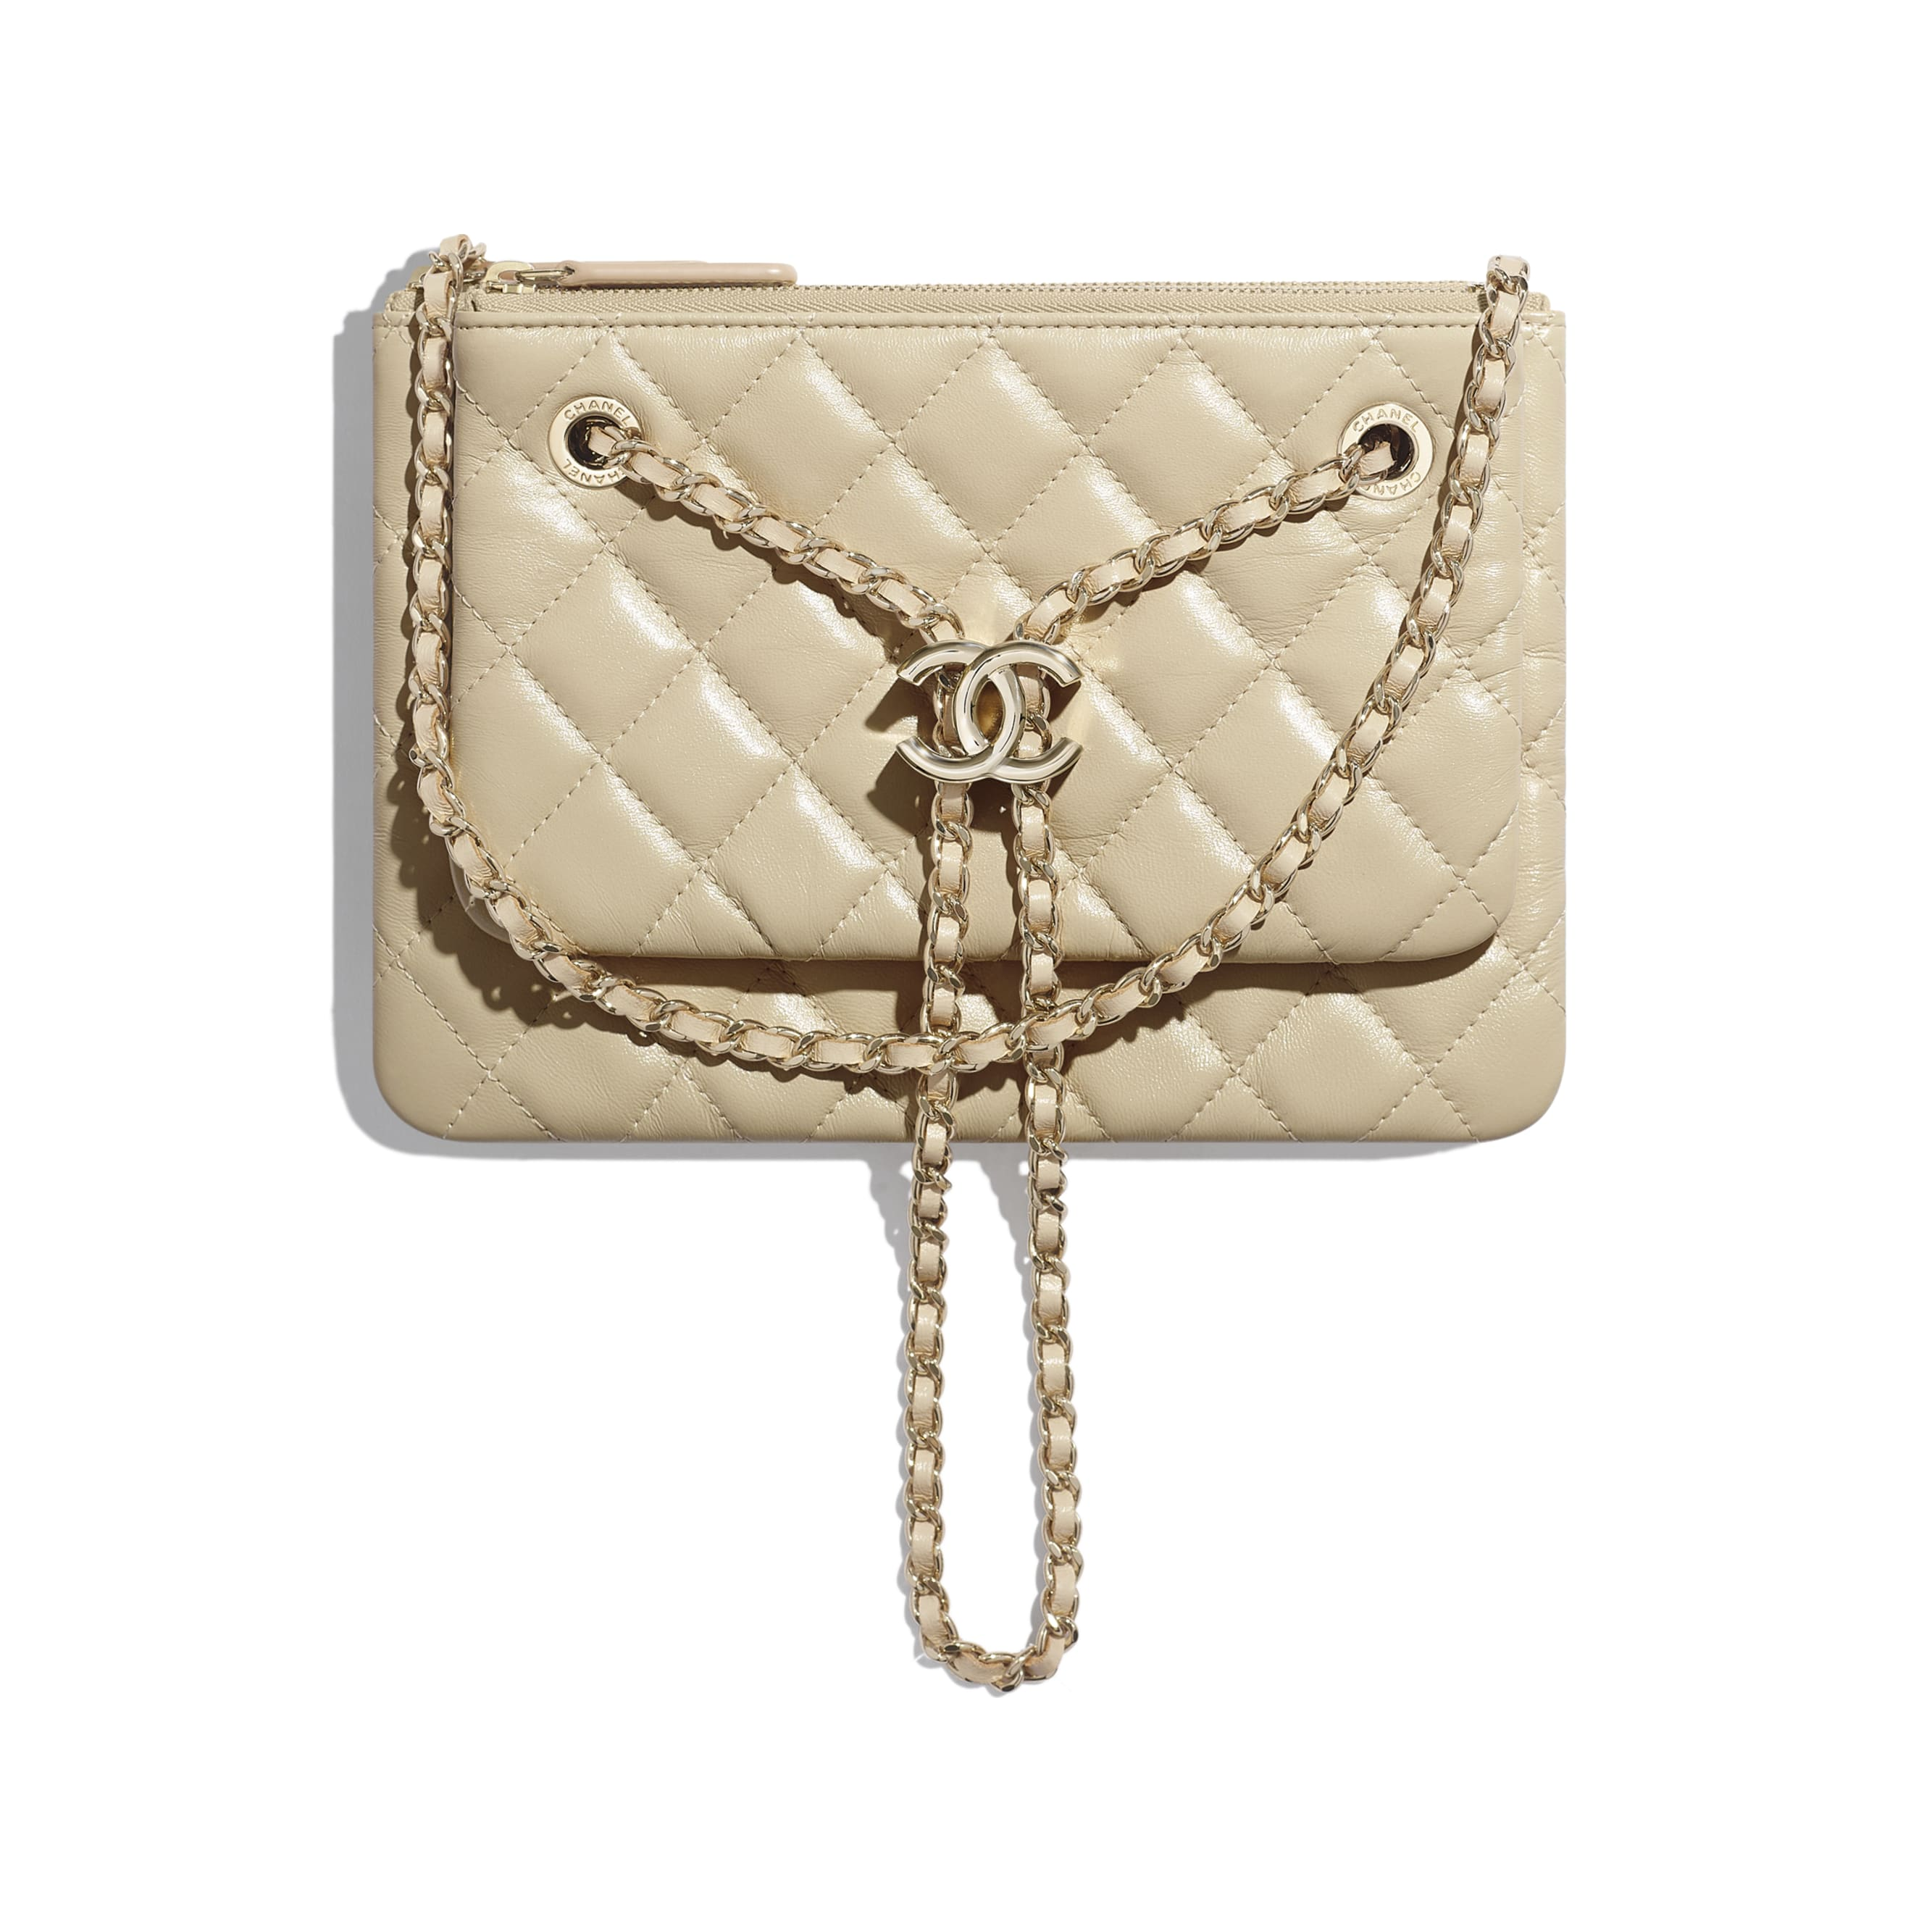 Clutch with Chain - Beige - Shiny Lambskin & Gold-Tone Metal - CHANEL - Default view - see standard sized version